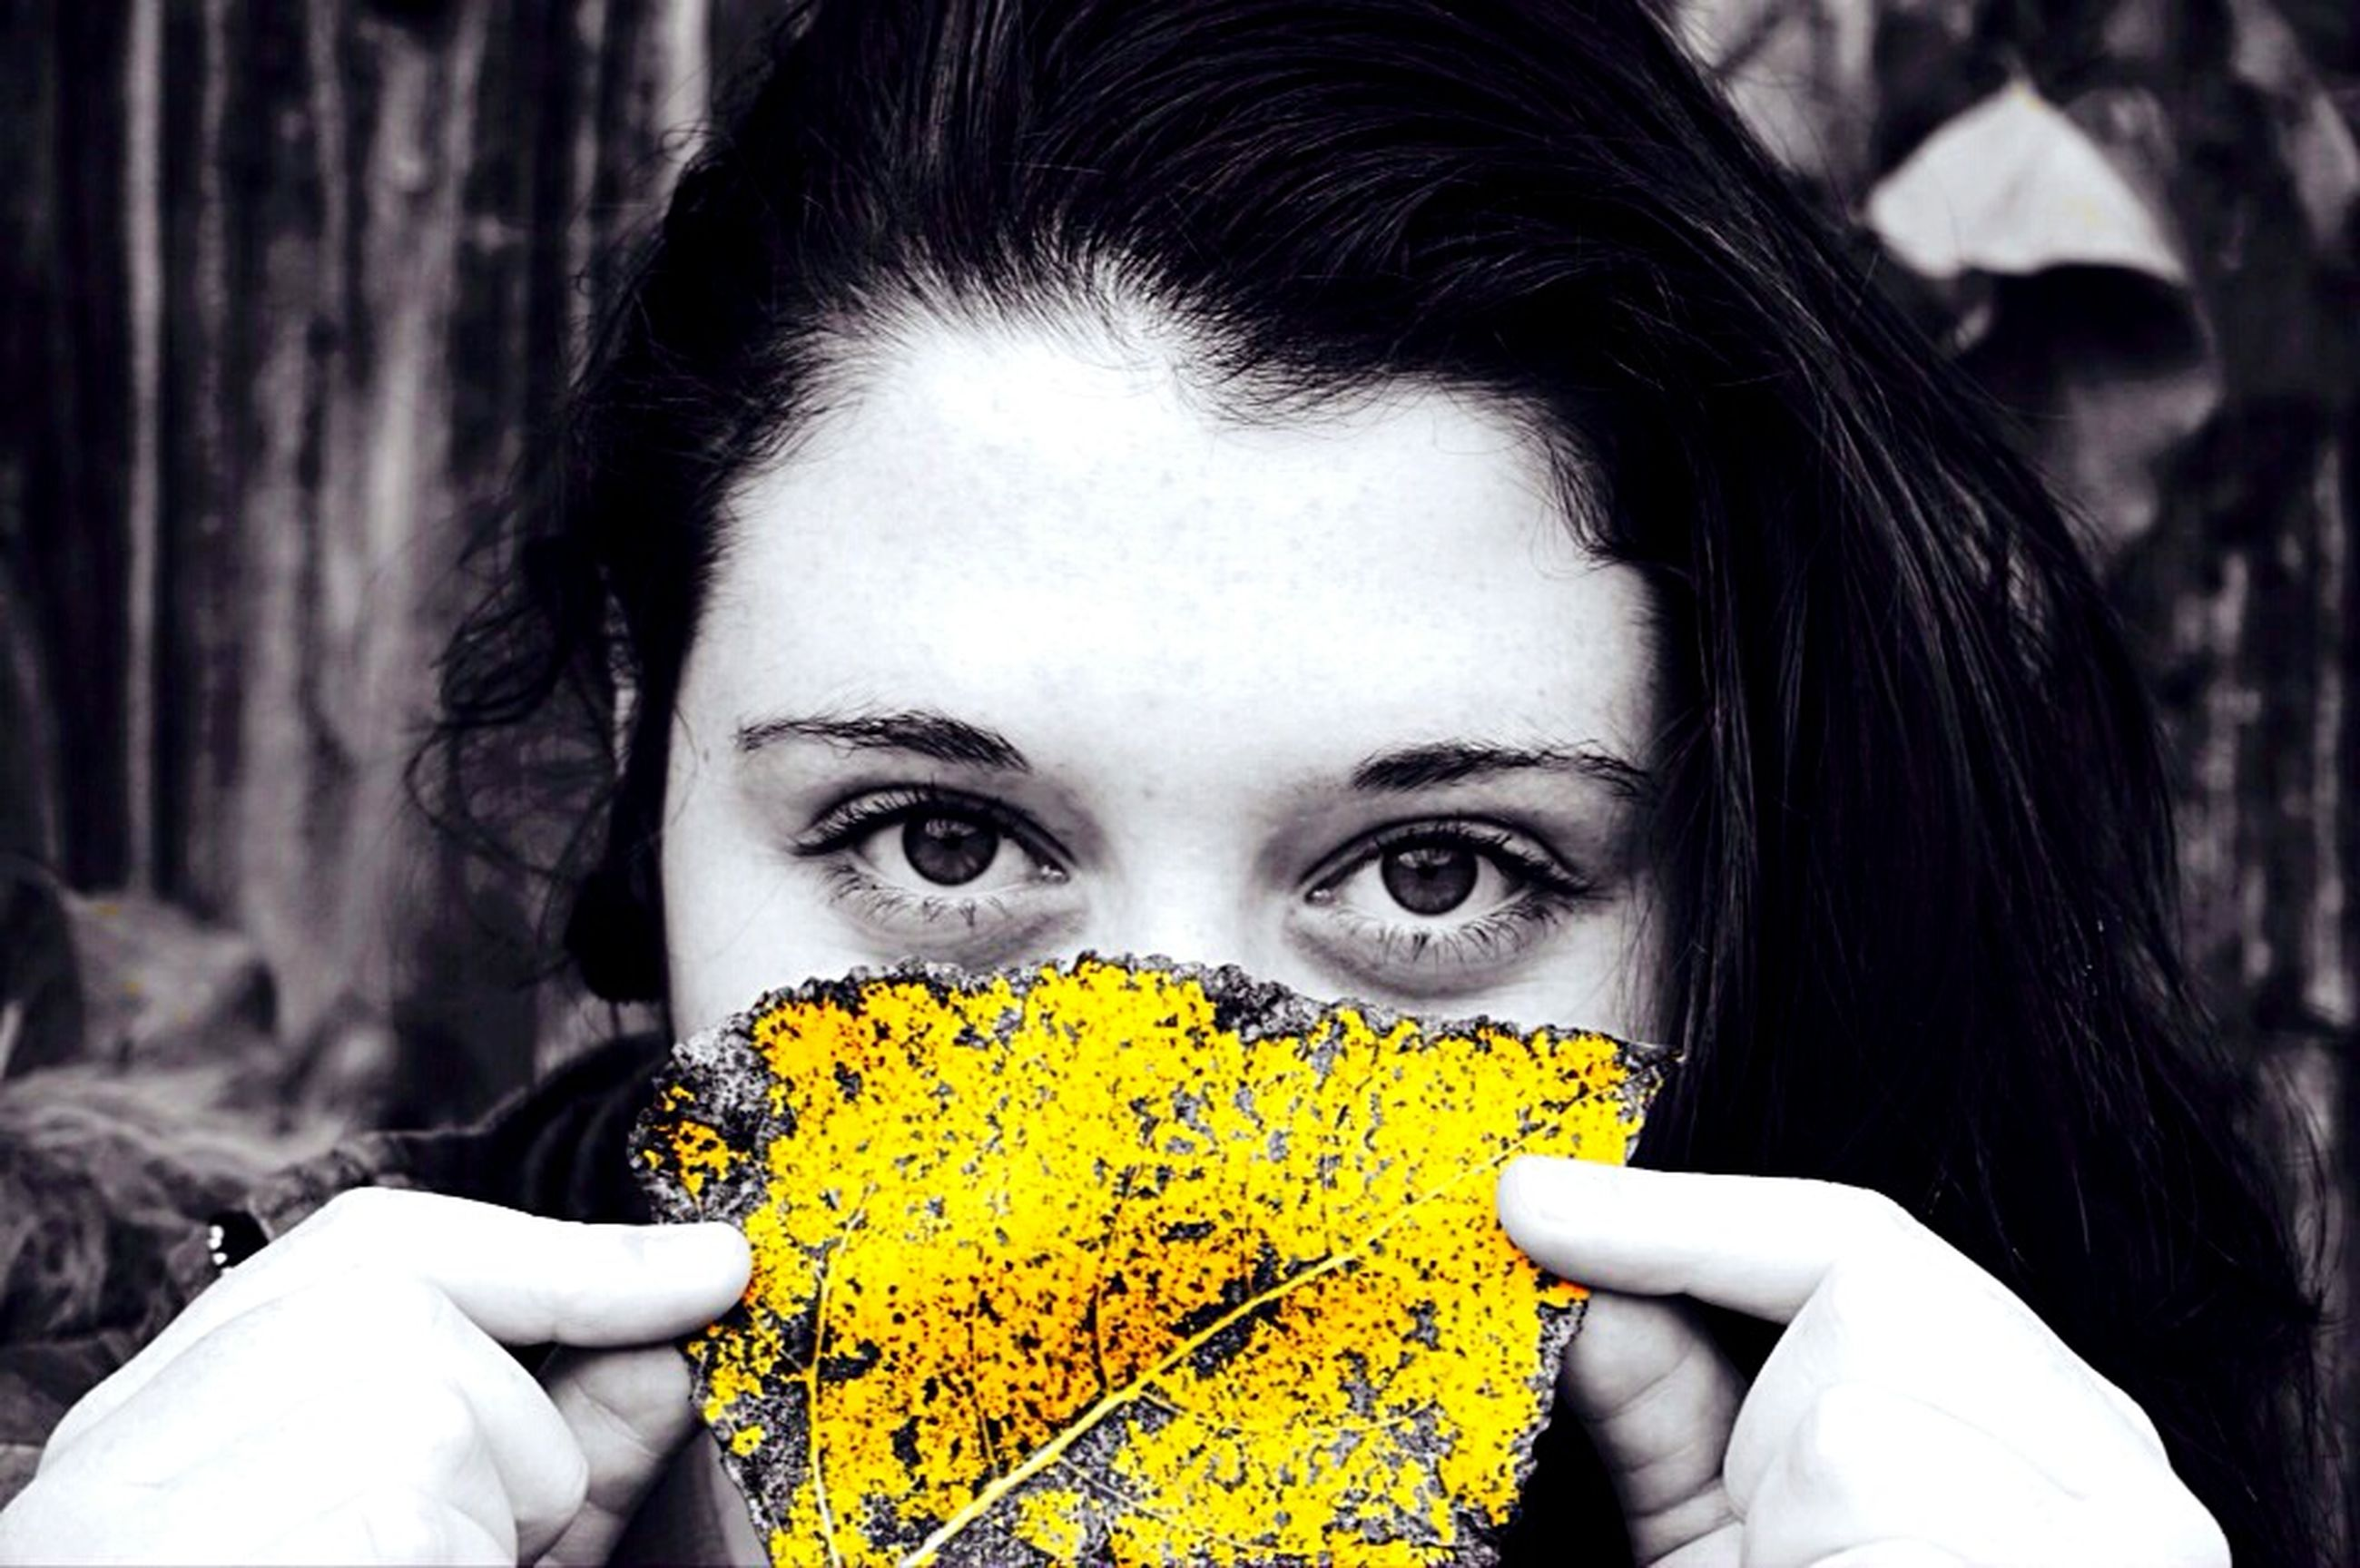 focus on foreground, headshot, flower, close-up, lifestyles, leisure activity, yellow, holding, person, young women, young adult, front view, nature, part of, outdoors